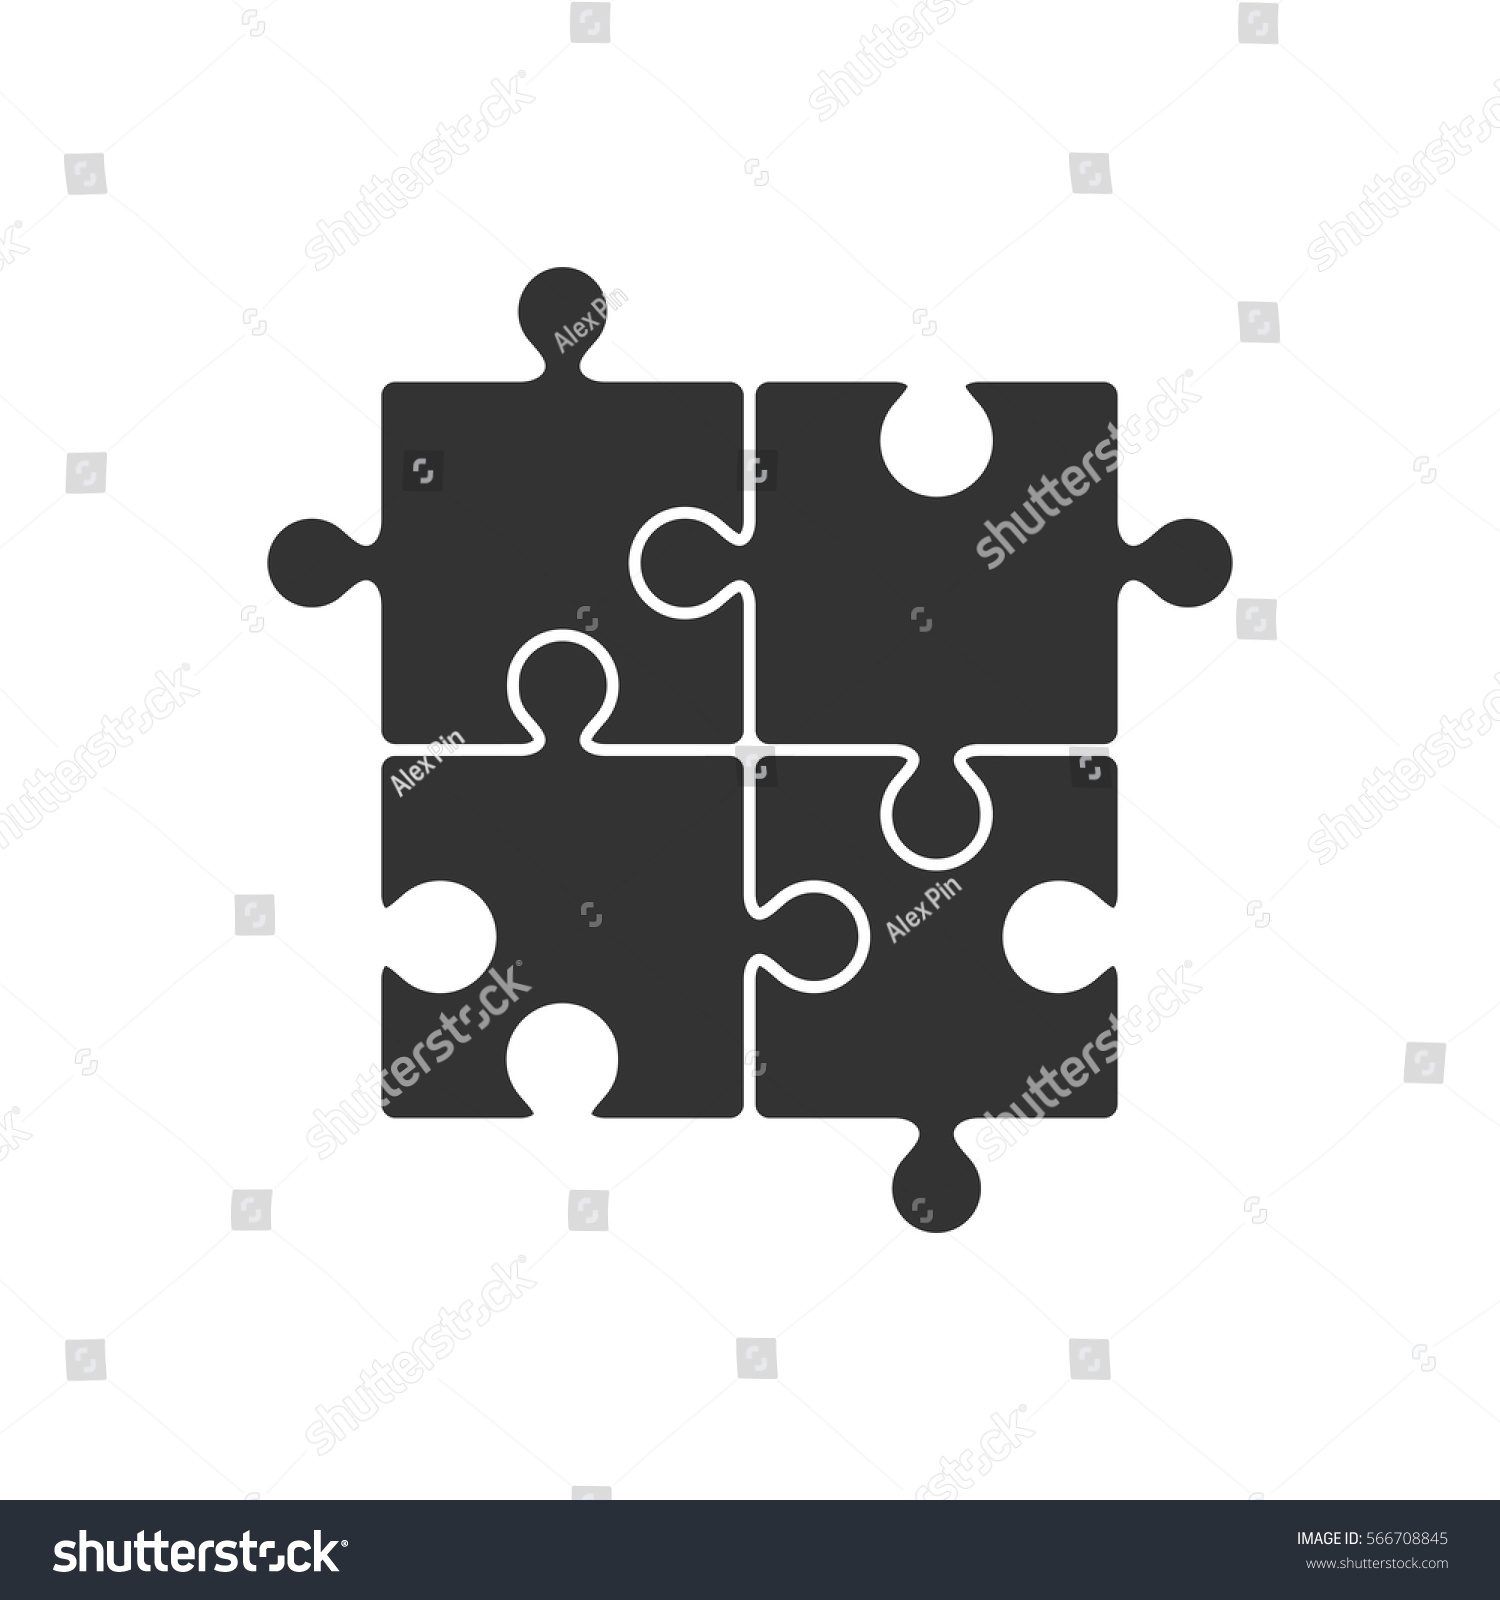 Four Piece Puzzle Icon Stock Vector HD (Royalty Free) 566708845 ...